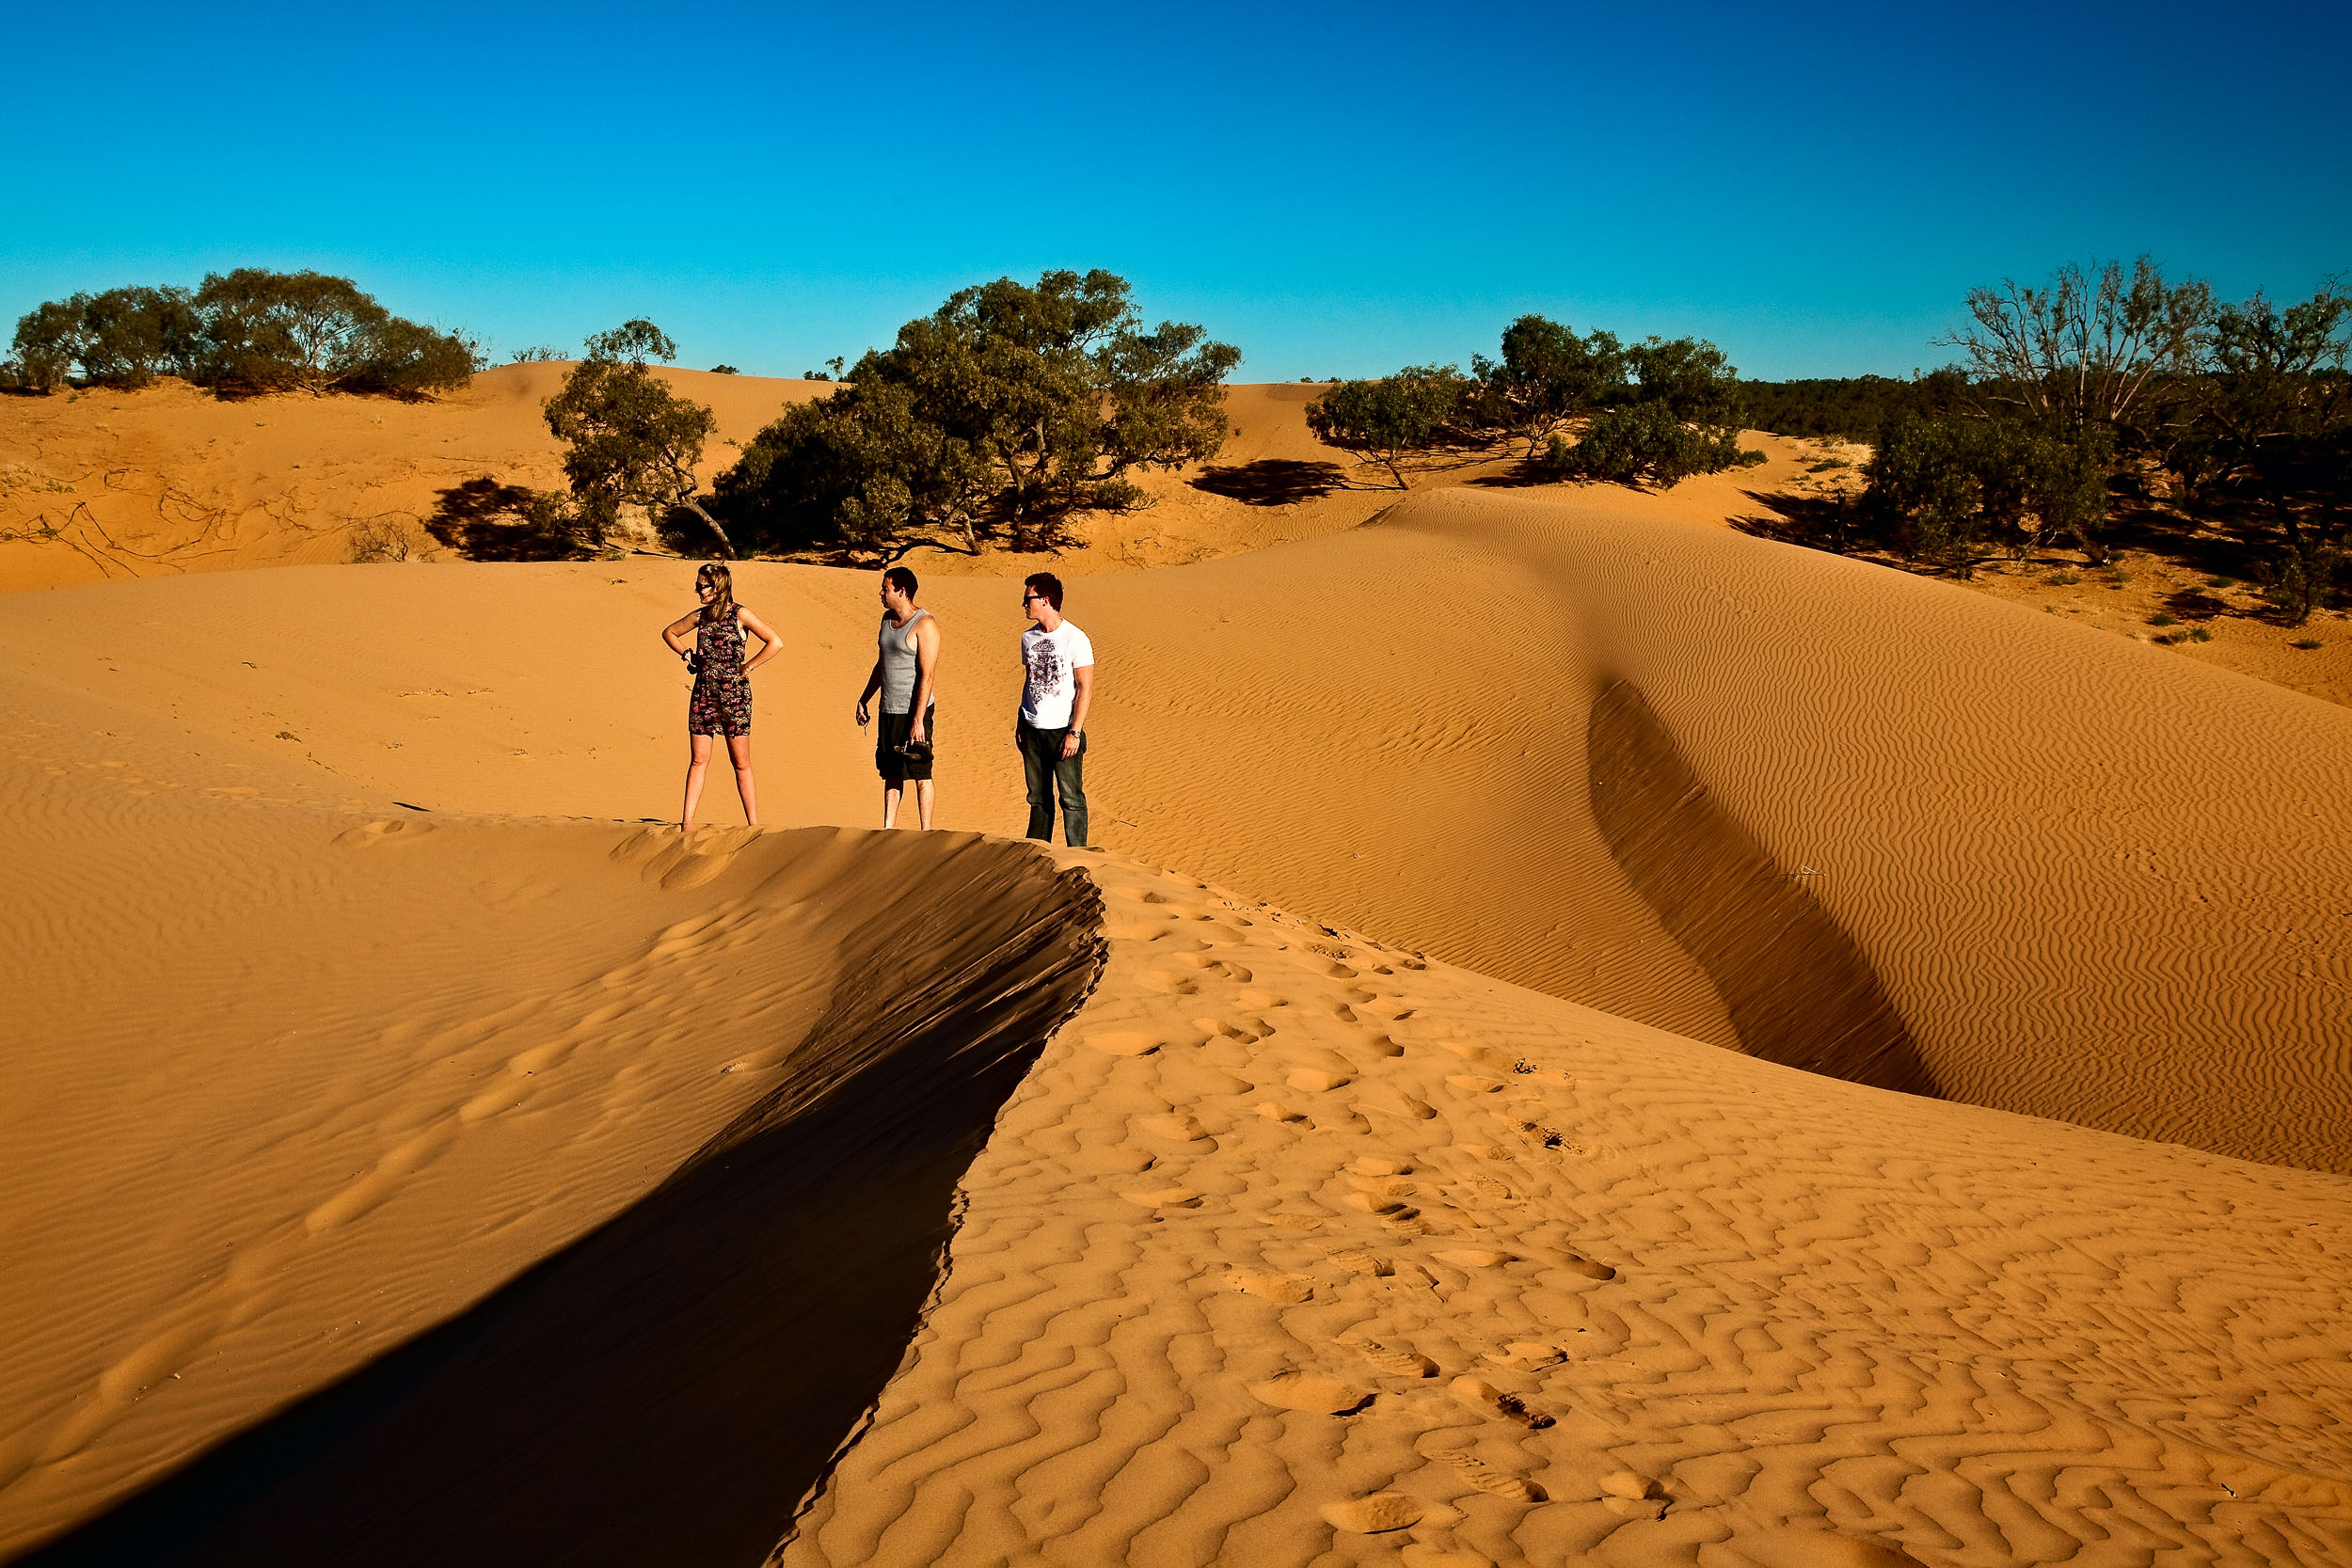 Three Aussie tourists at the    Perry Sandhills    near the town of    Wentworth    in south western NSW,    Australia   .